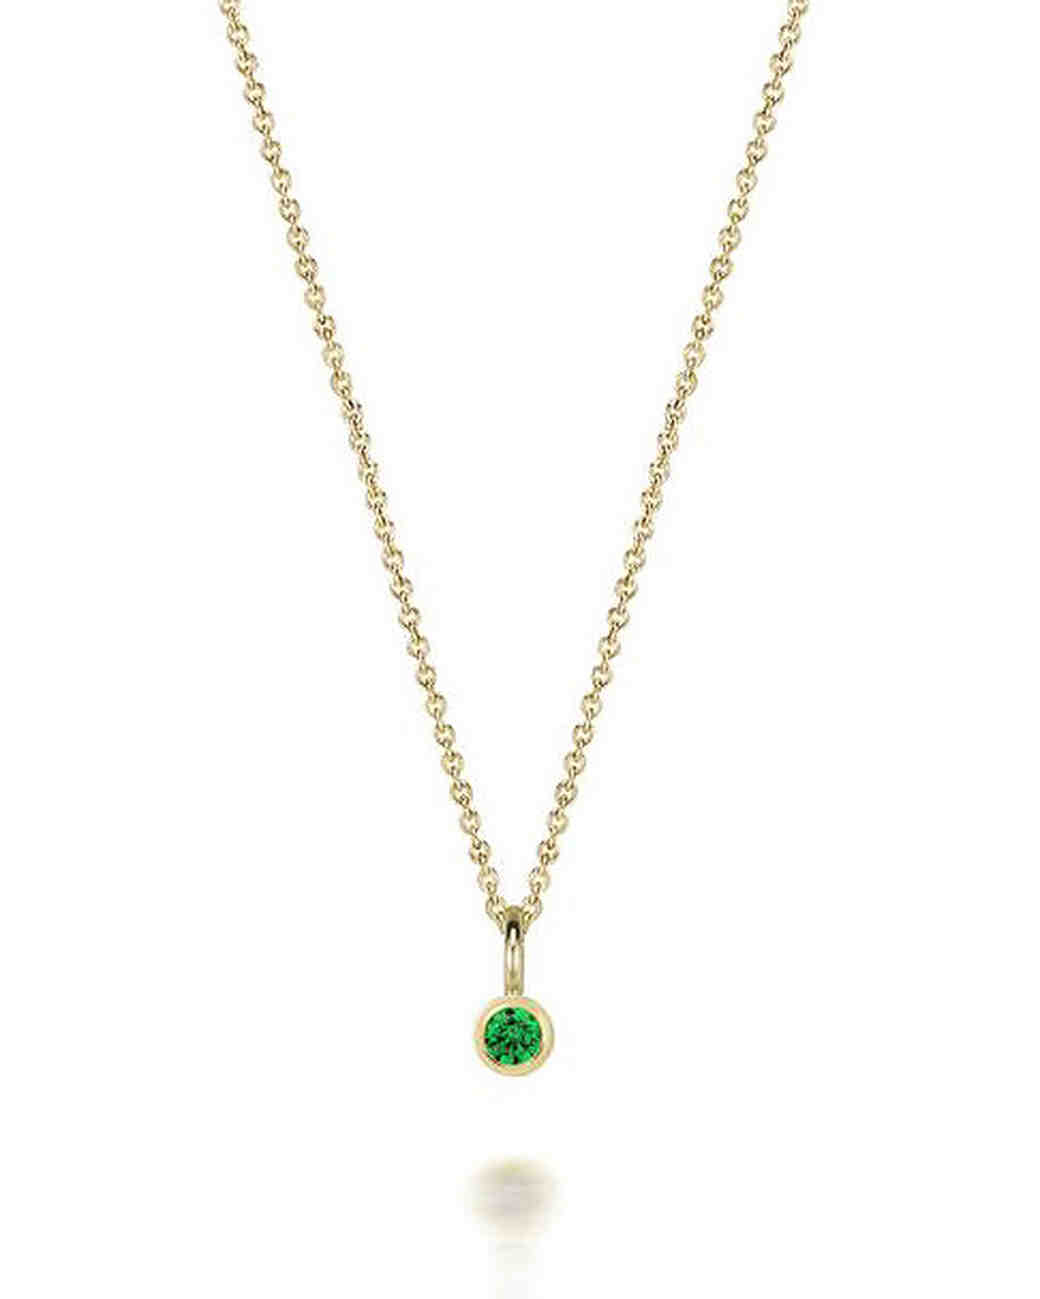 personalized bridesmaids jewelry gift green pendant necklace